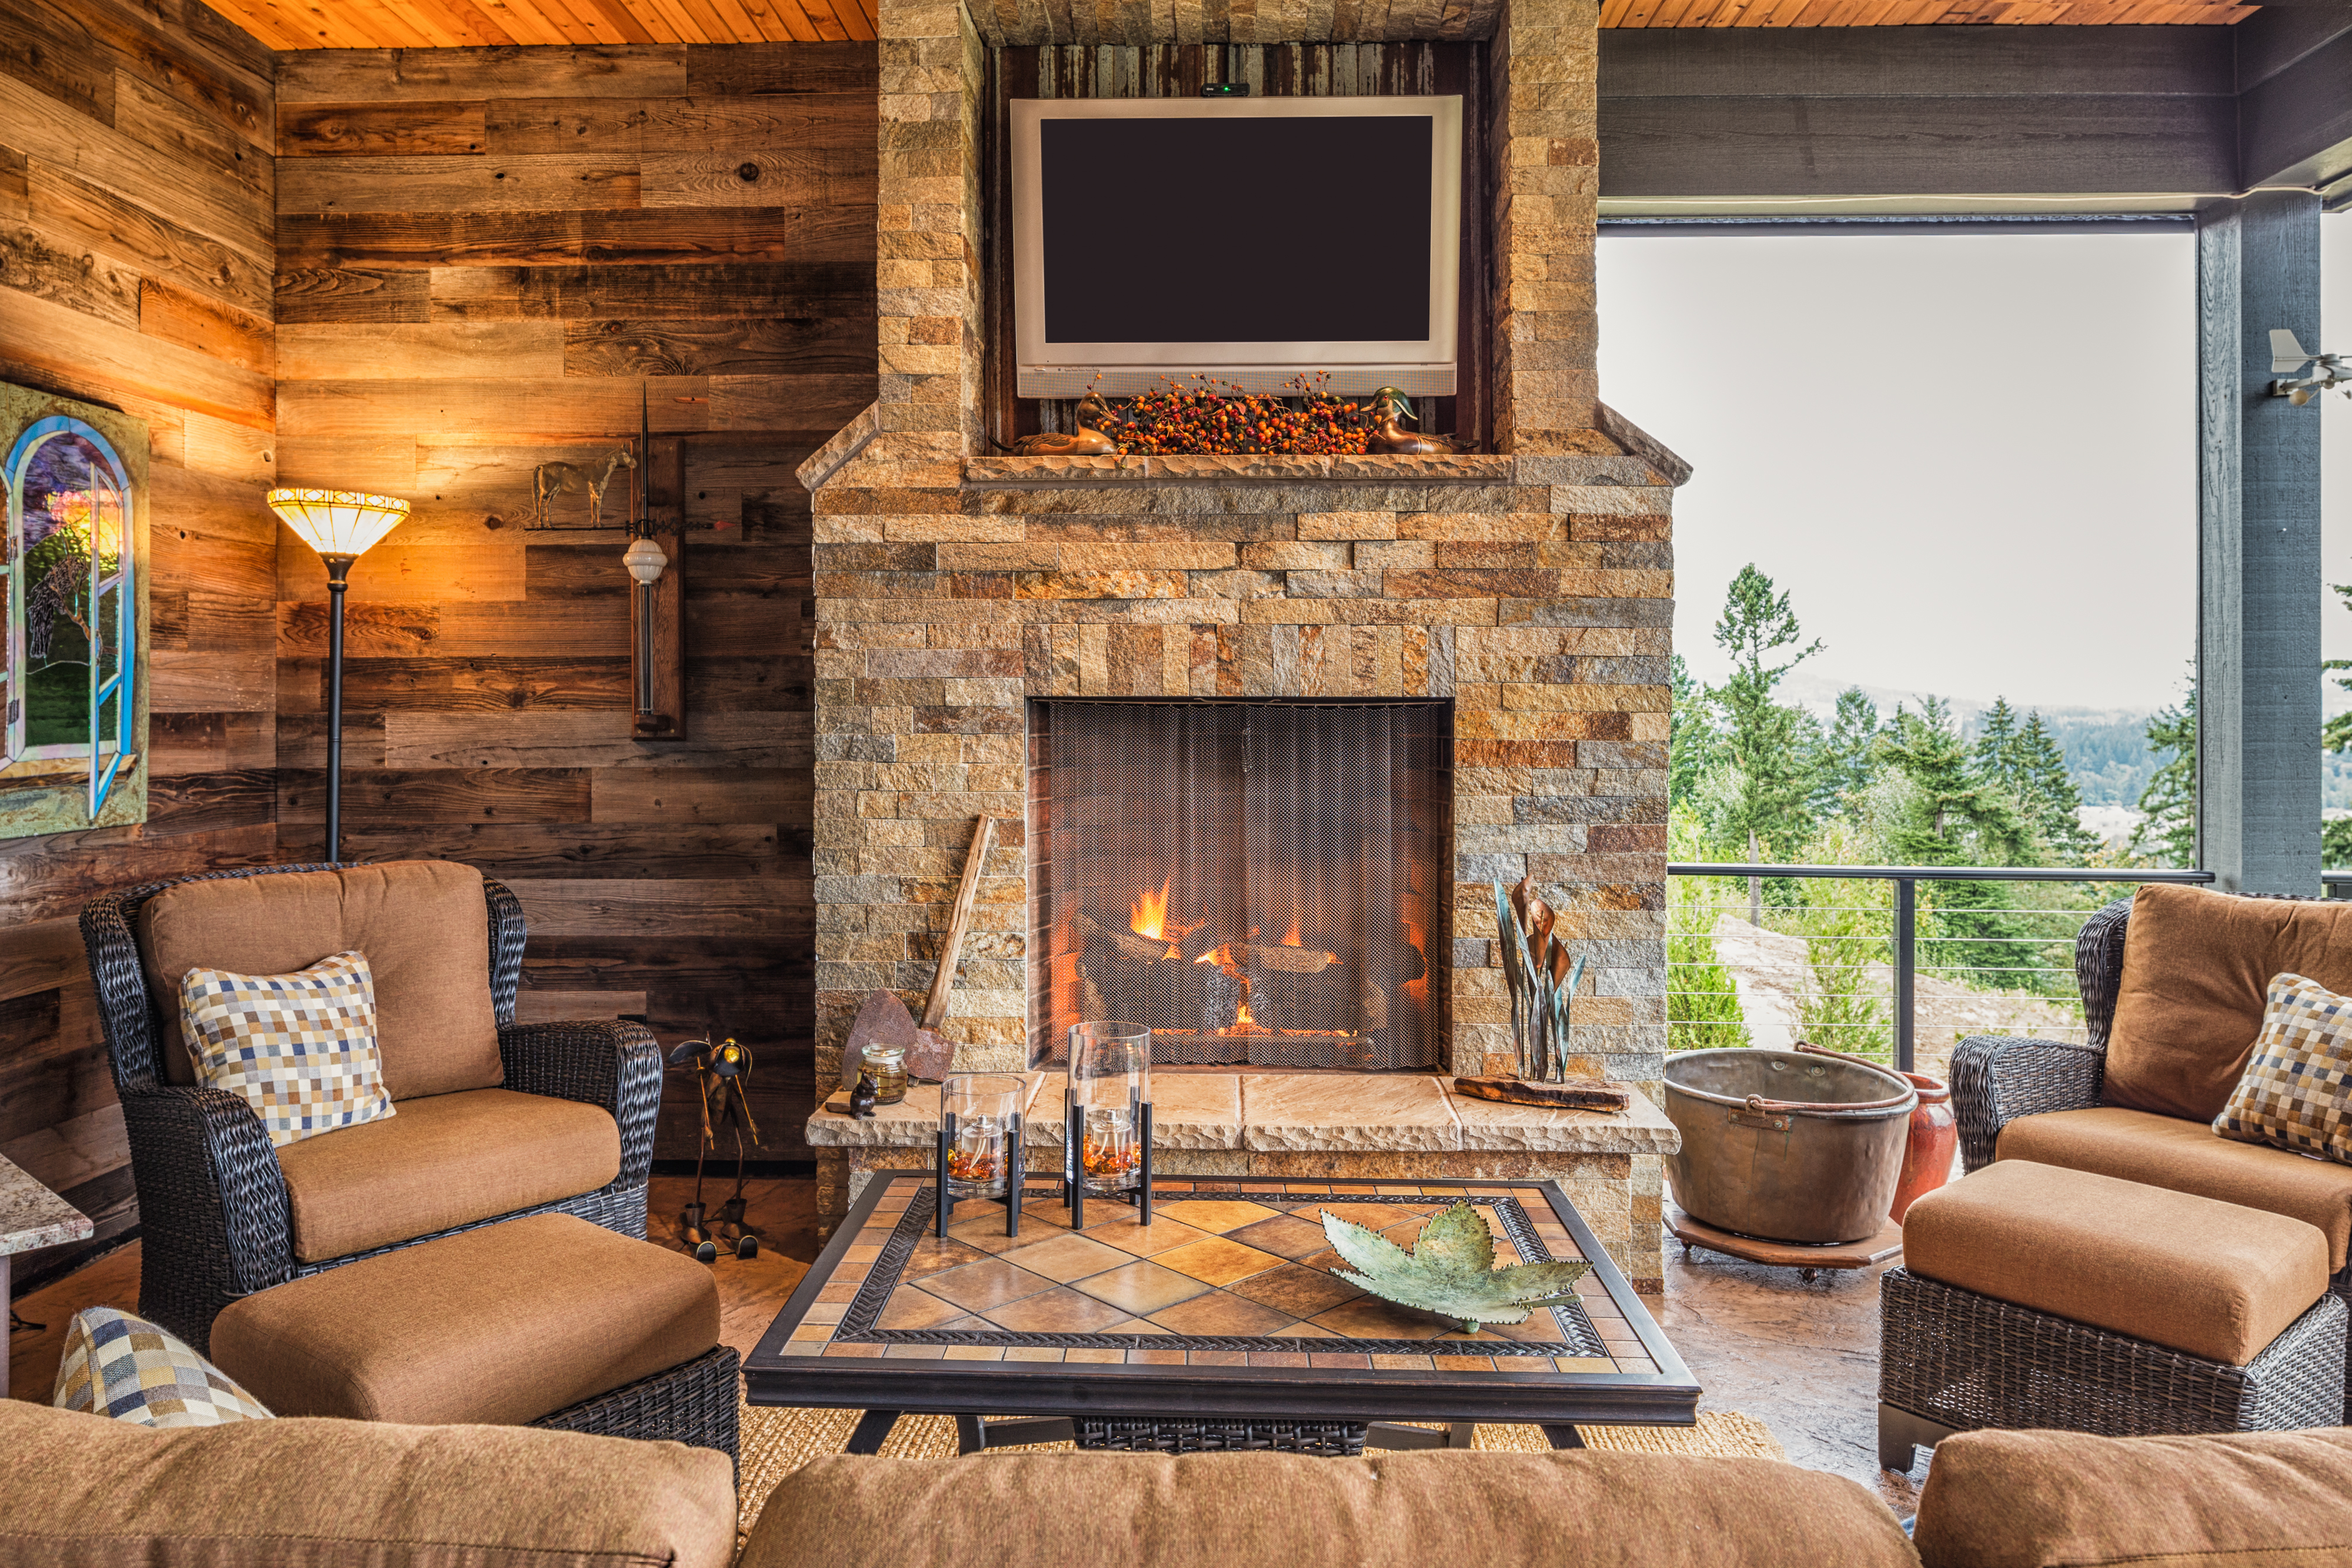 Covered Outdoor Patio Outside New Home with Couch, Chairs, TV, Fireplace, and Roaring Fire